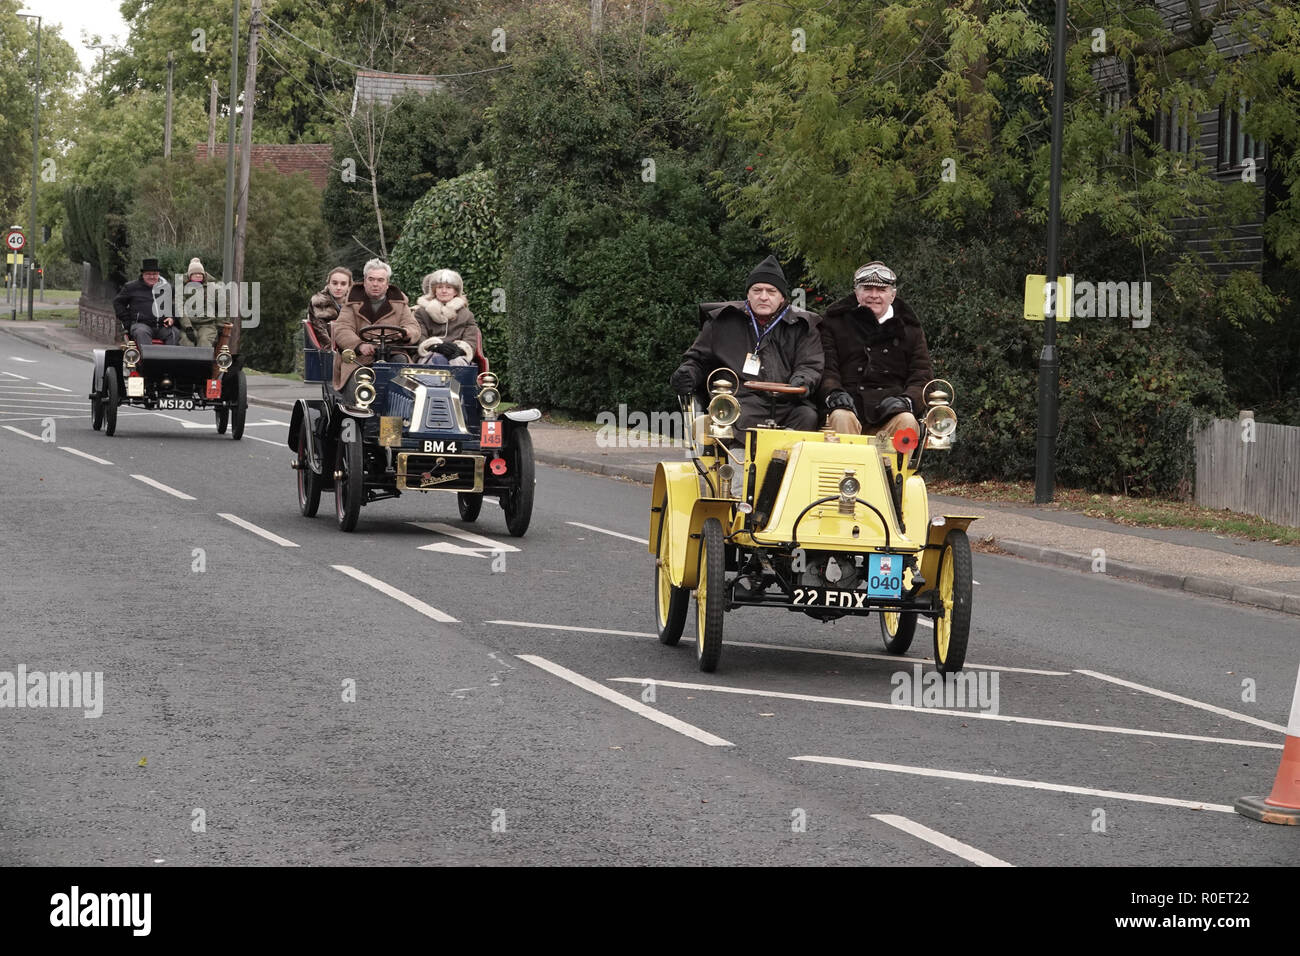 Crawley, West Sussex, UK. 4th November, 2018  Crawley, West Sussex,  UK  Veteran automobiles and their crew at the halfway stage cars stopped at the Honda garage in Crawley on the Bonhams sponsored London to Brighton Veteran car run halfway stop at the Honda showroom in Crawley, Credit: Motofoto/Alamy Live News Stock Photo